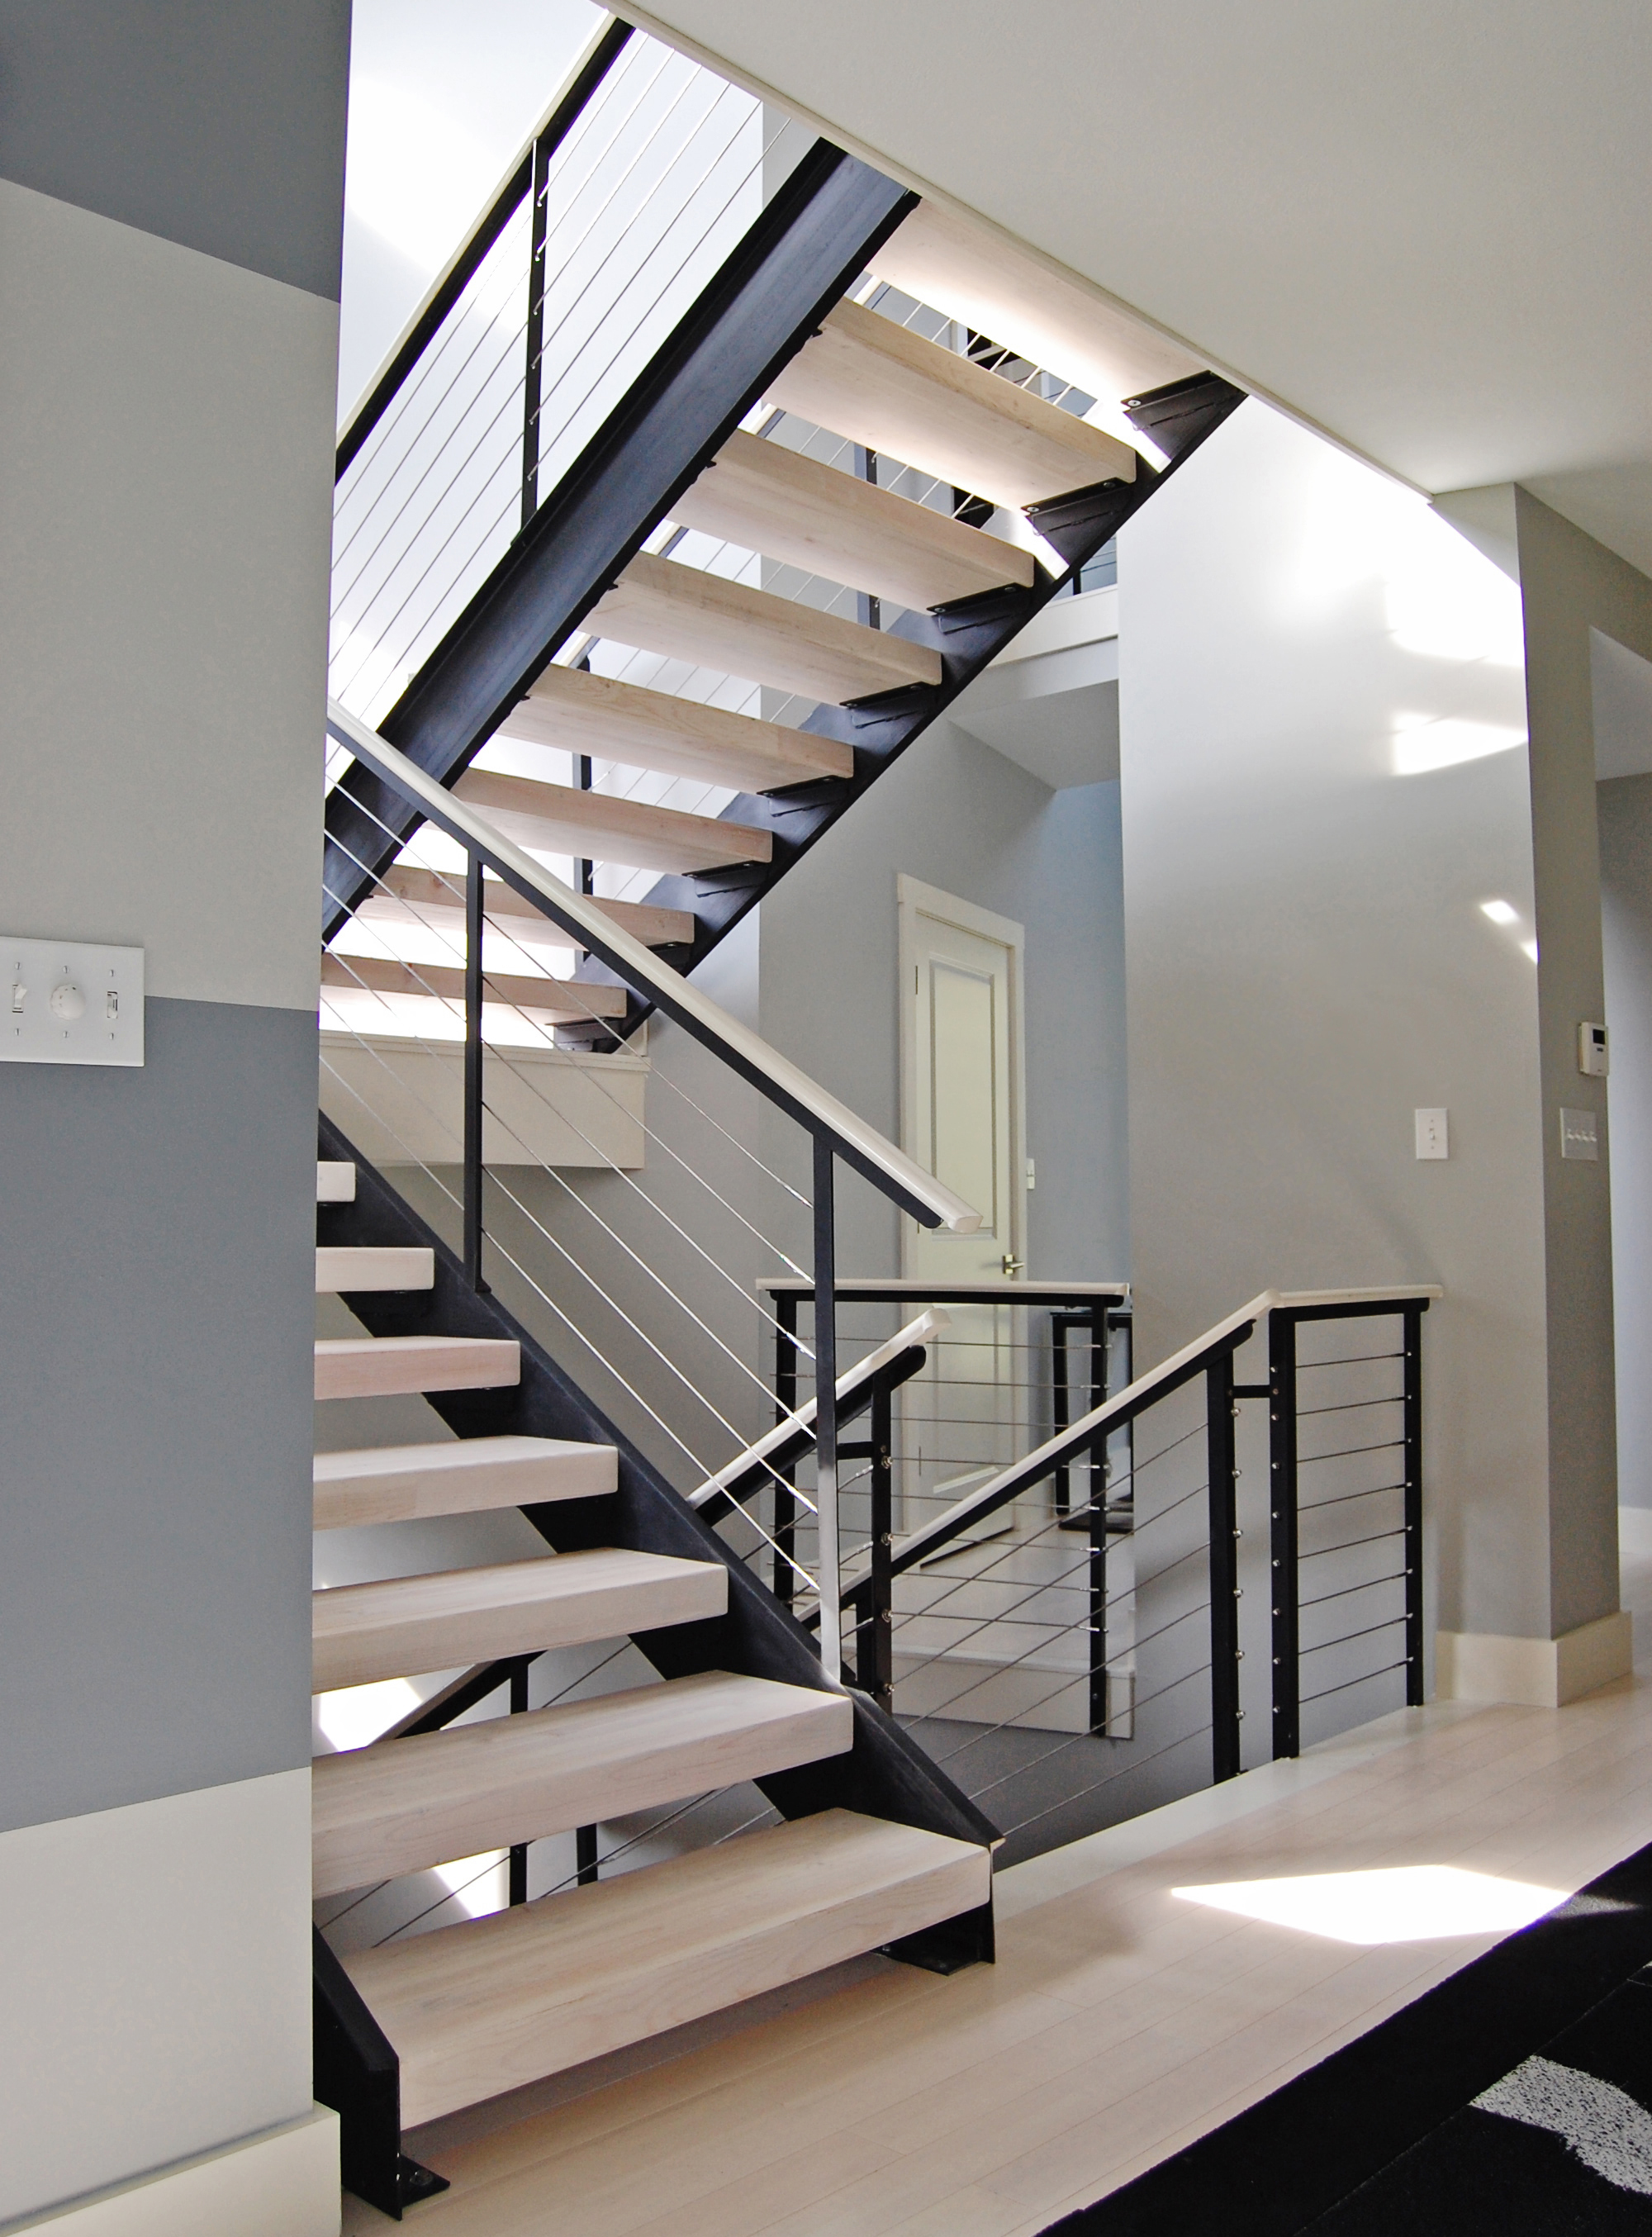 for circular cable handrail hand railing interior prefab continuous outdoor front rail commercial metal iron of railings size custom outside steps tech balustrade kits full aluminum entry step mclean side external exterior stair handrails with stairs fences